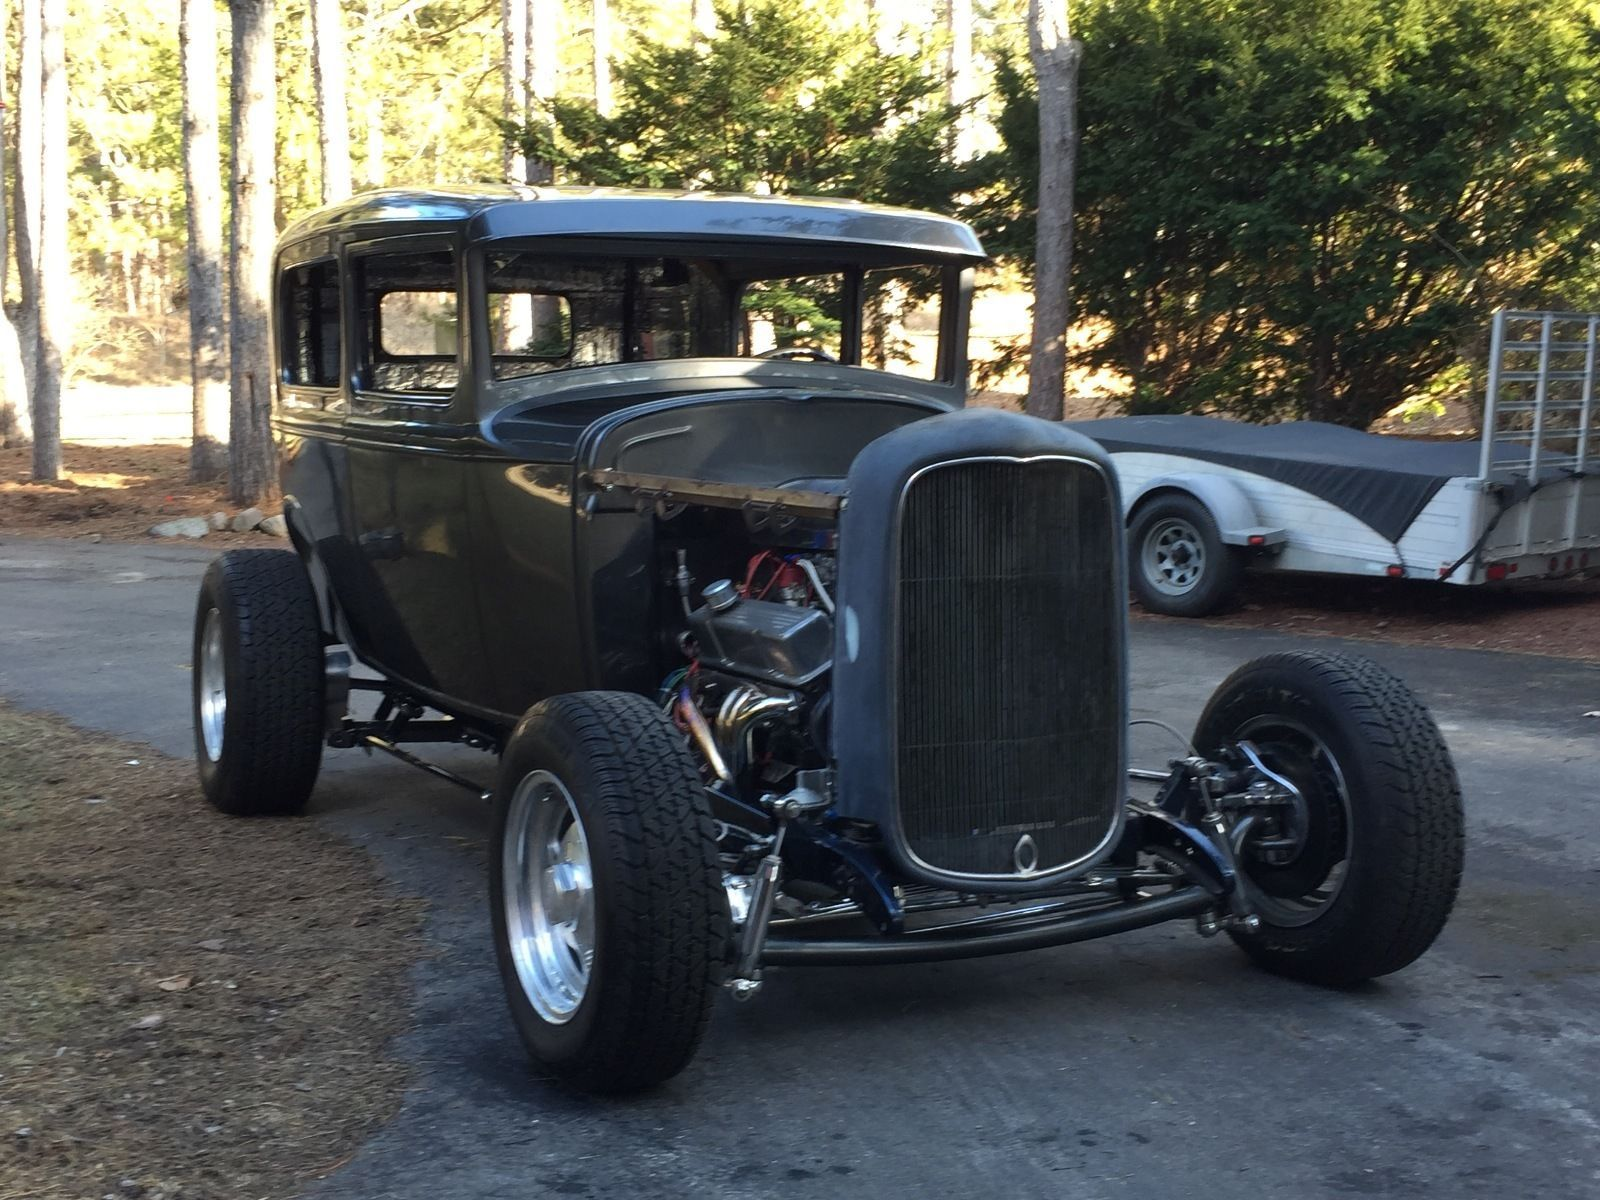 Wonderful Project Hot Rods For Sale Photos - Classic Cars Ideas ...